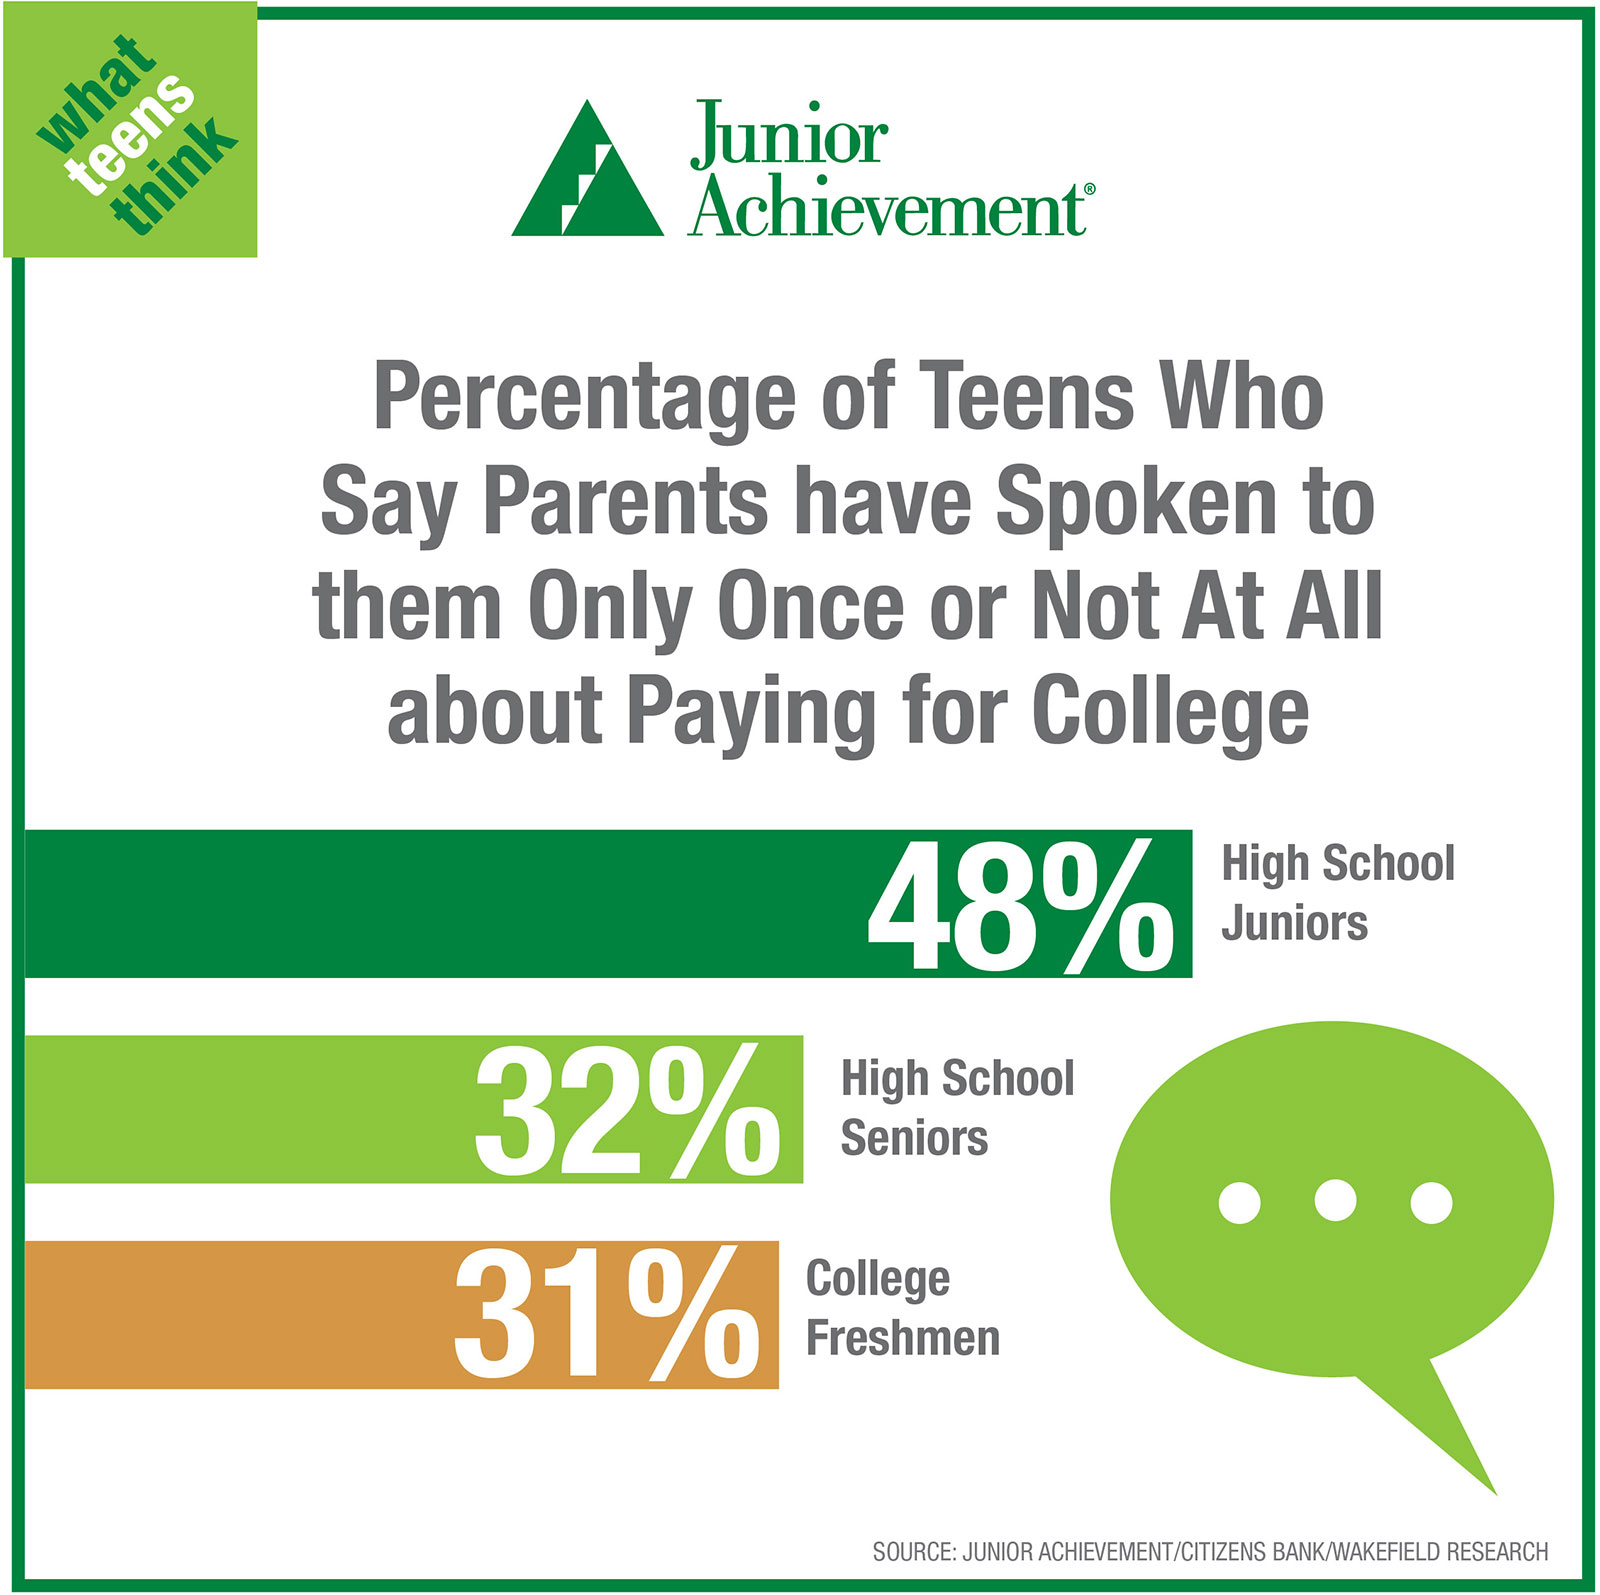 Teens spoke to parents about paying for college